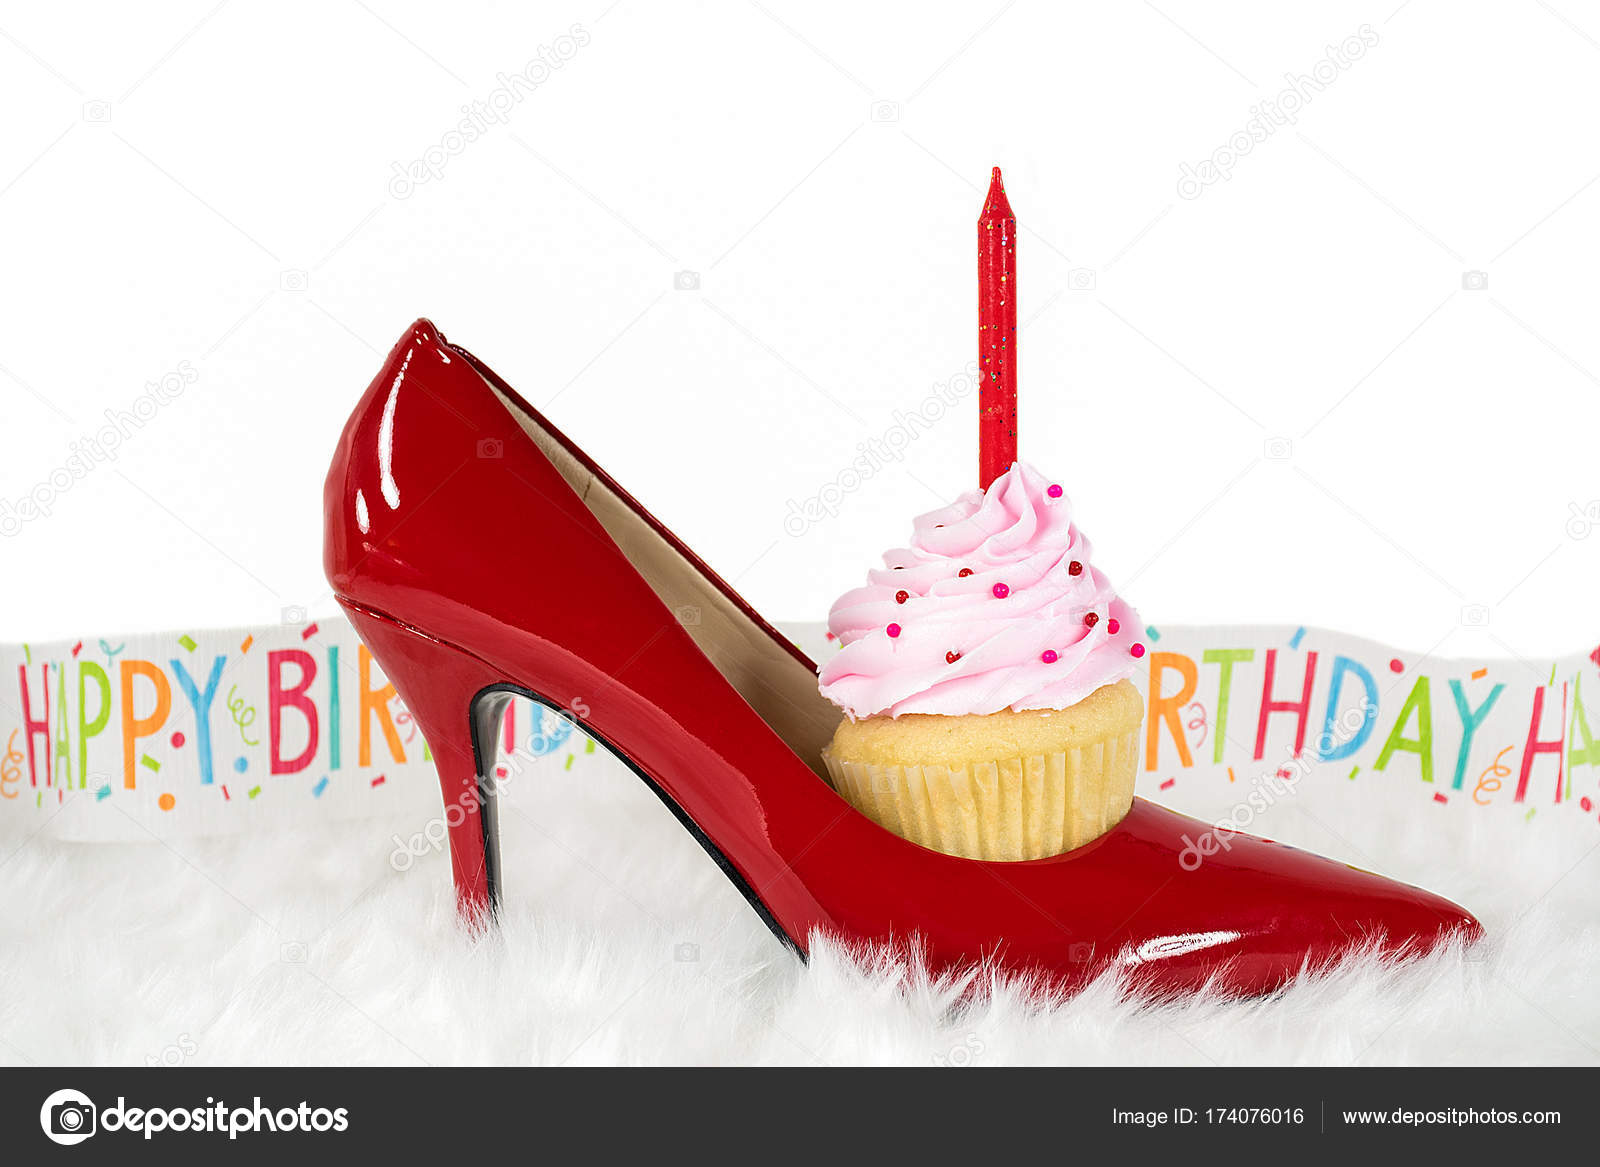 Pleasing Images High Heel Shoe Birthday Cake Birthday Cupcake In Red Birthday Cards Printable Opercafe Filternl